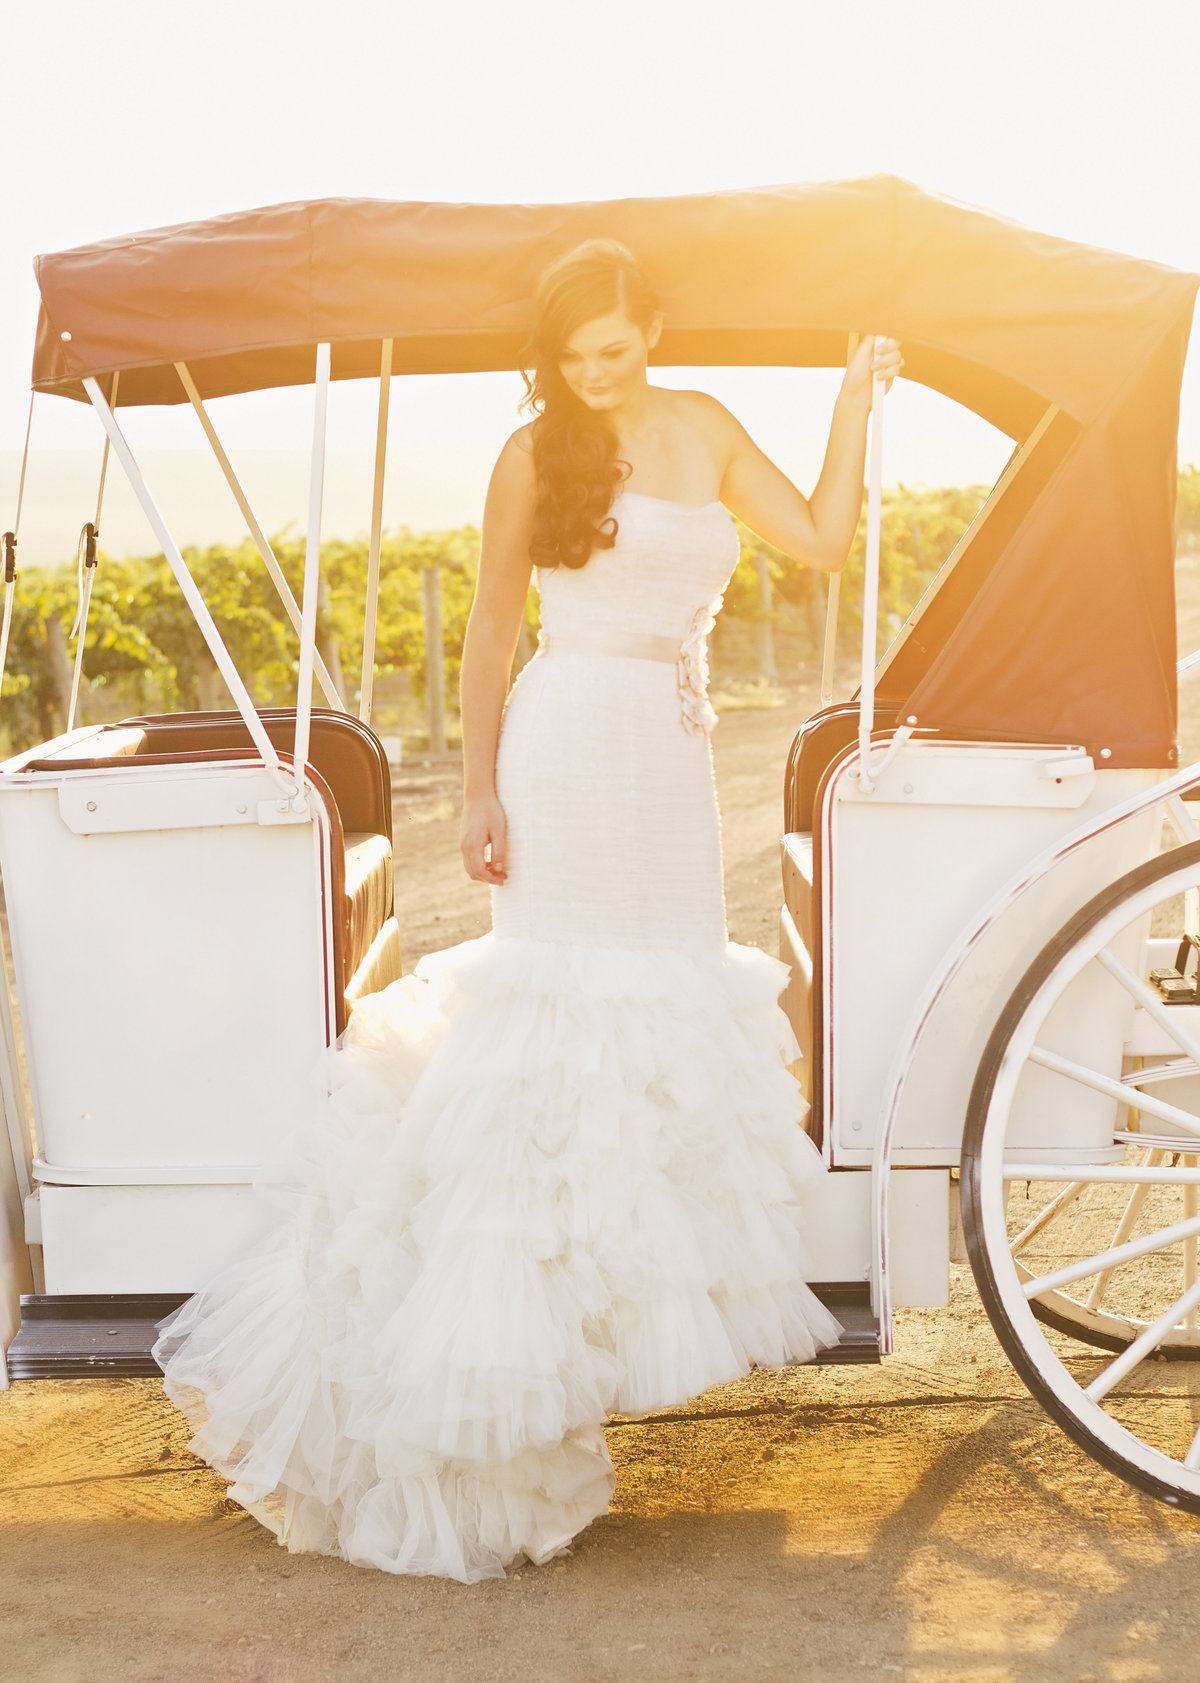 horse in carriage bridal photoshoot brand lookbook